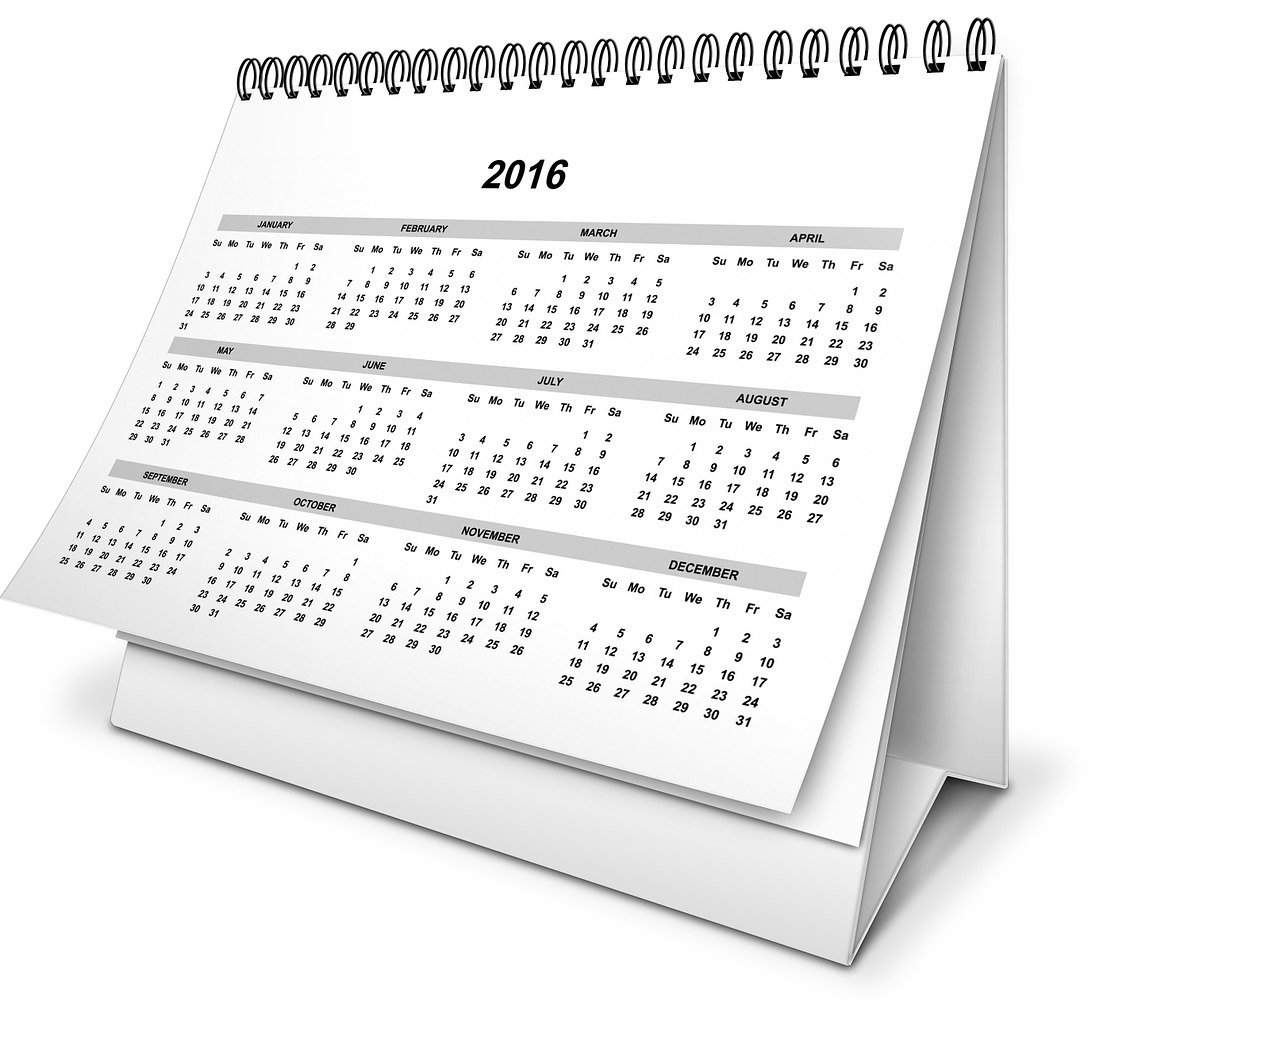 Public holidays in 2016